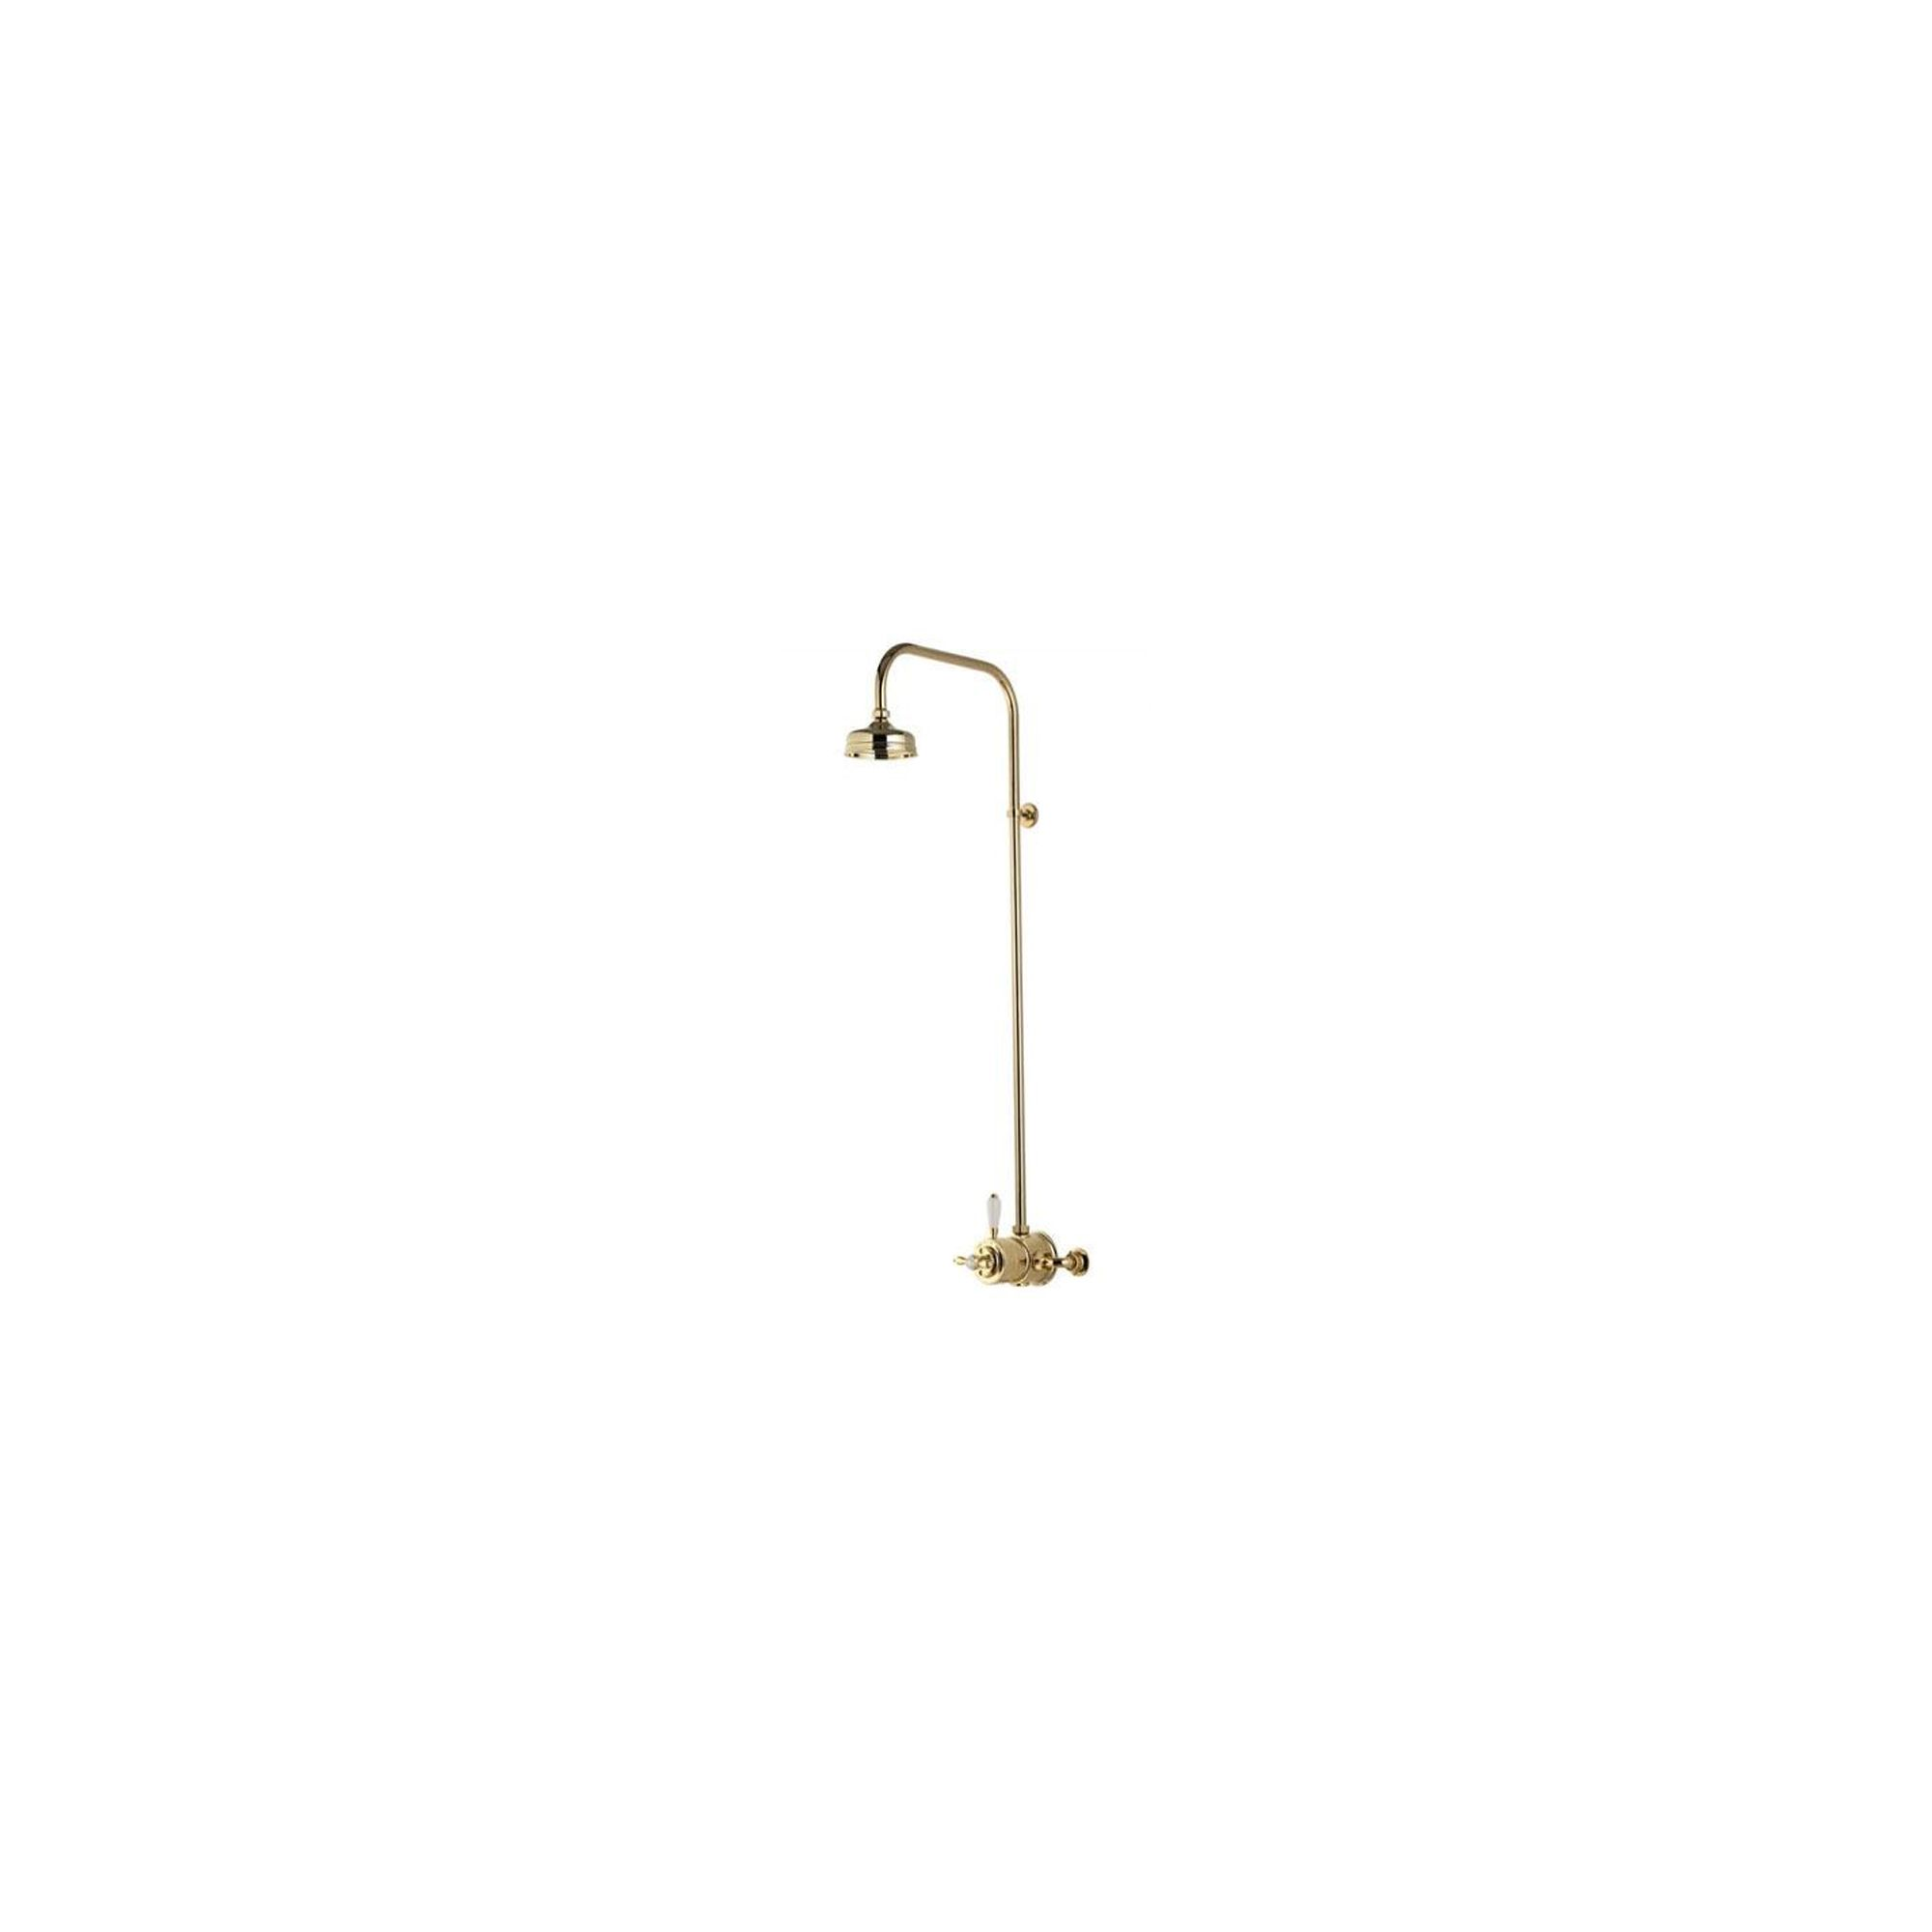 Aqualisa Aquatique Thermo Exposed Valve with 5 Inch Fixed Head Gold at Tesco Direct